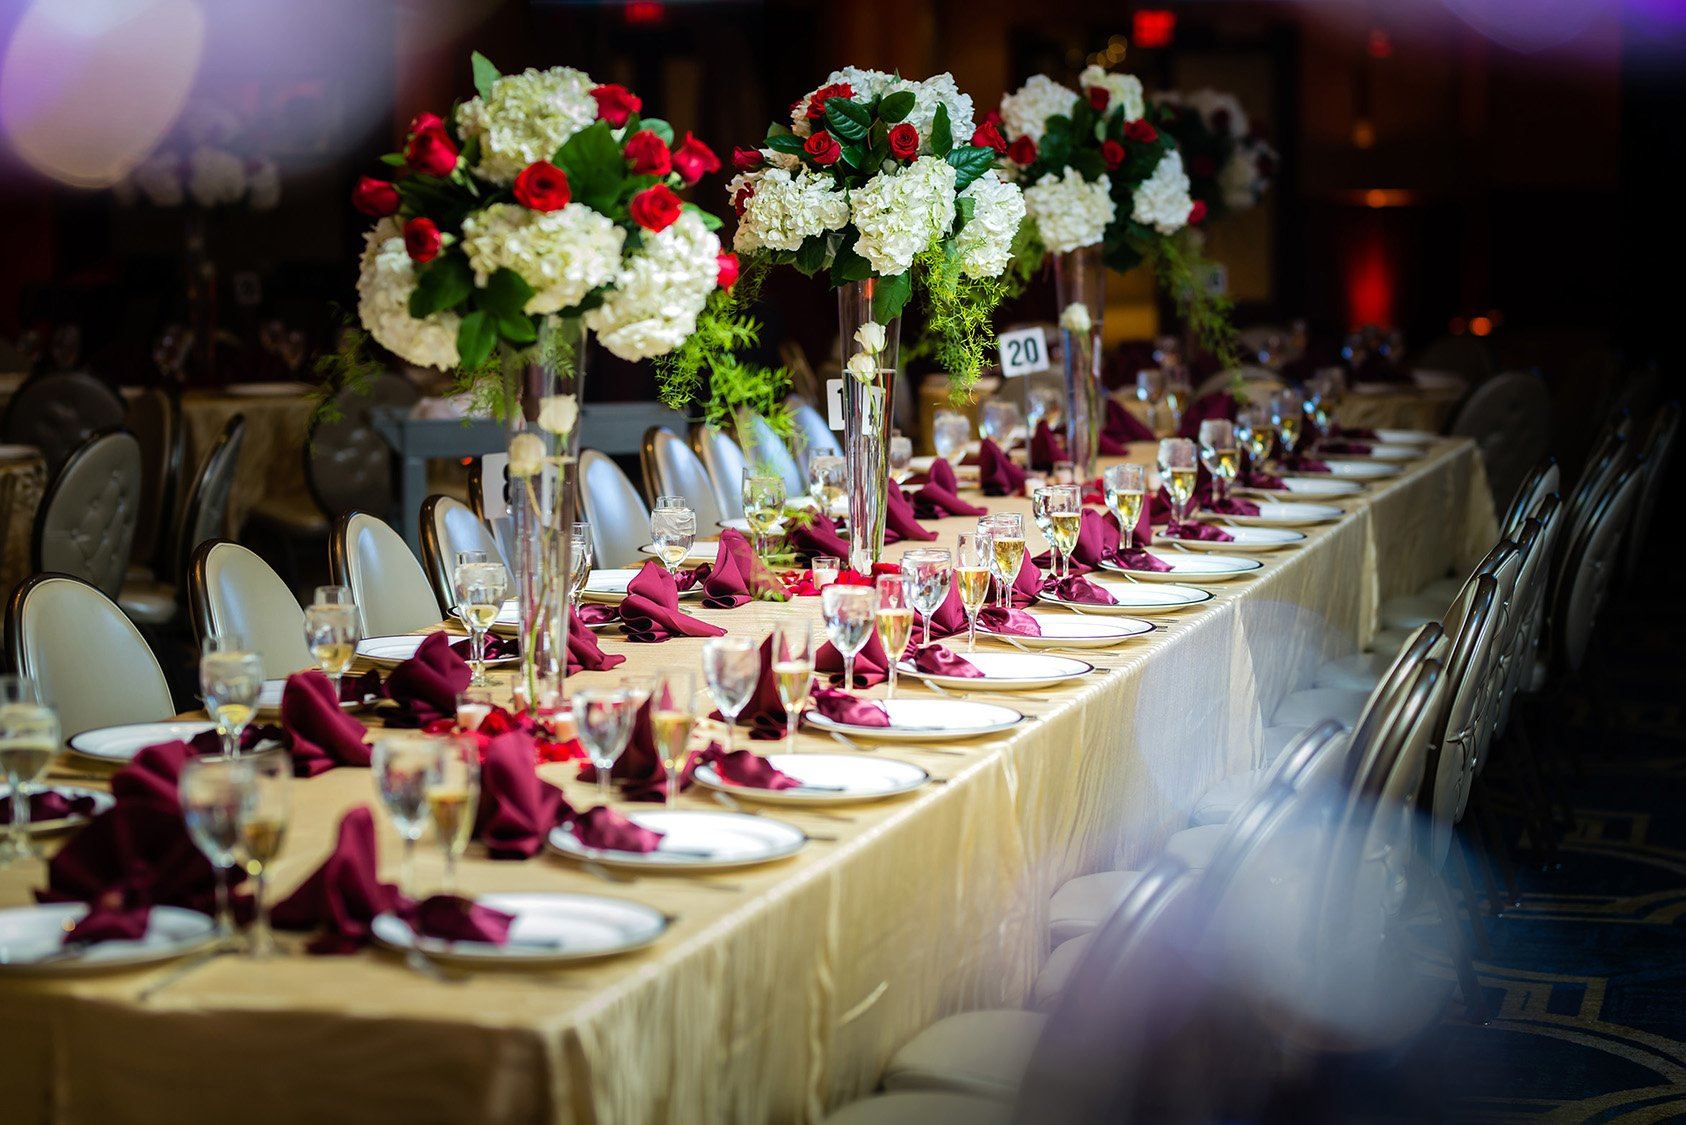 The-Imperia-Wedding-Photo details